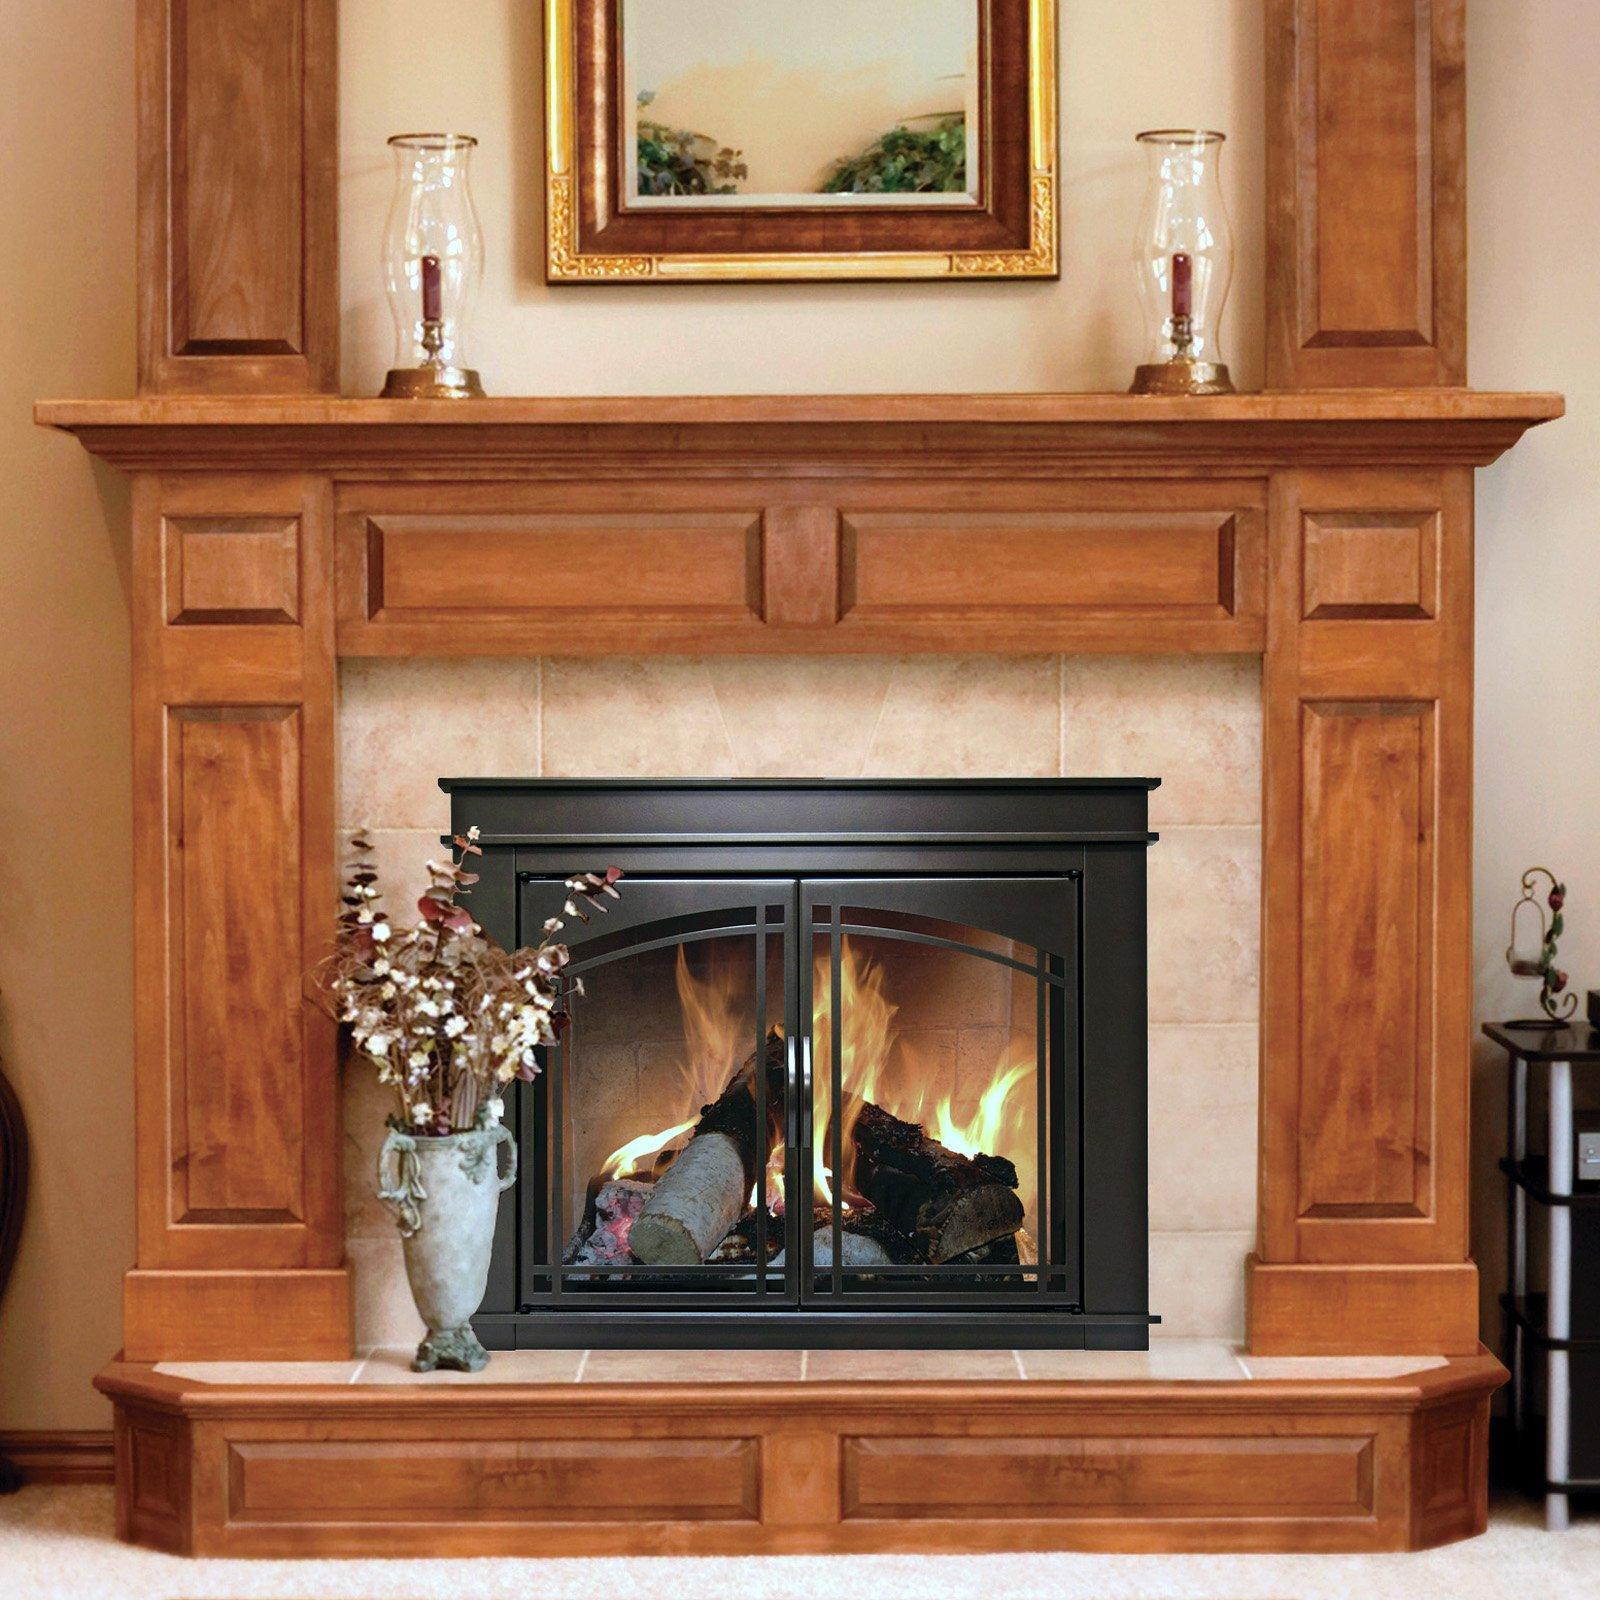 Modern Fireplace Screen With Wood Doors (Image 8 of 13)